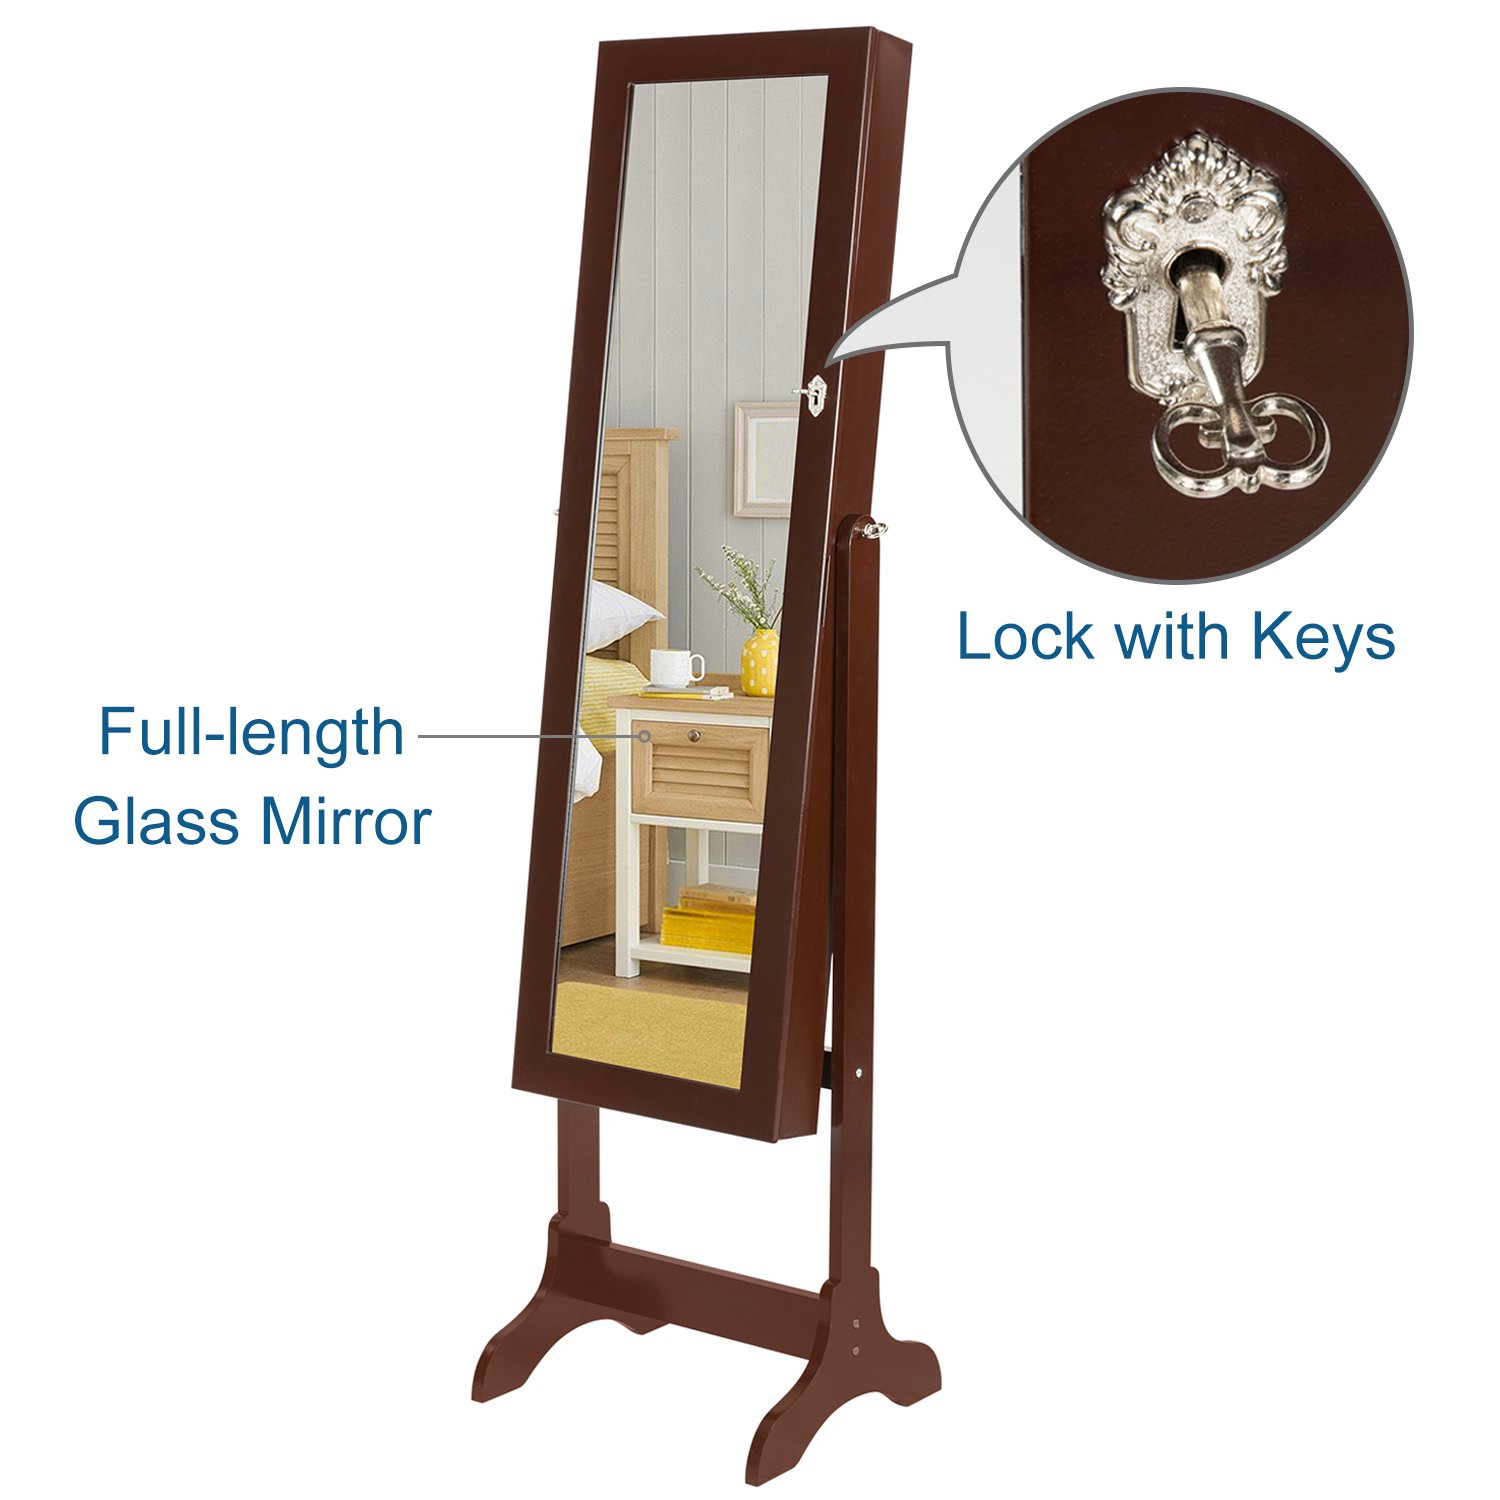 HollyHOME Mirrored Jewelry Cabinet Lockable Standing Jewelry Armoire Holder Organizer with LED Lights, 4 Angle Adjustable, Brown by HollyHOME (Image #6)